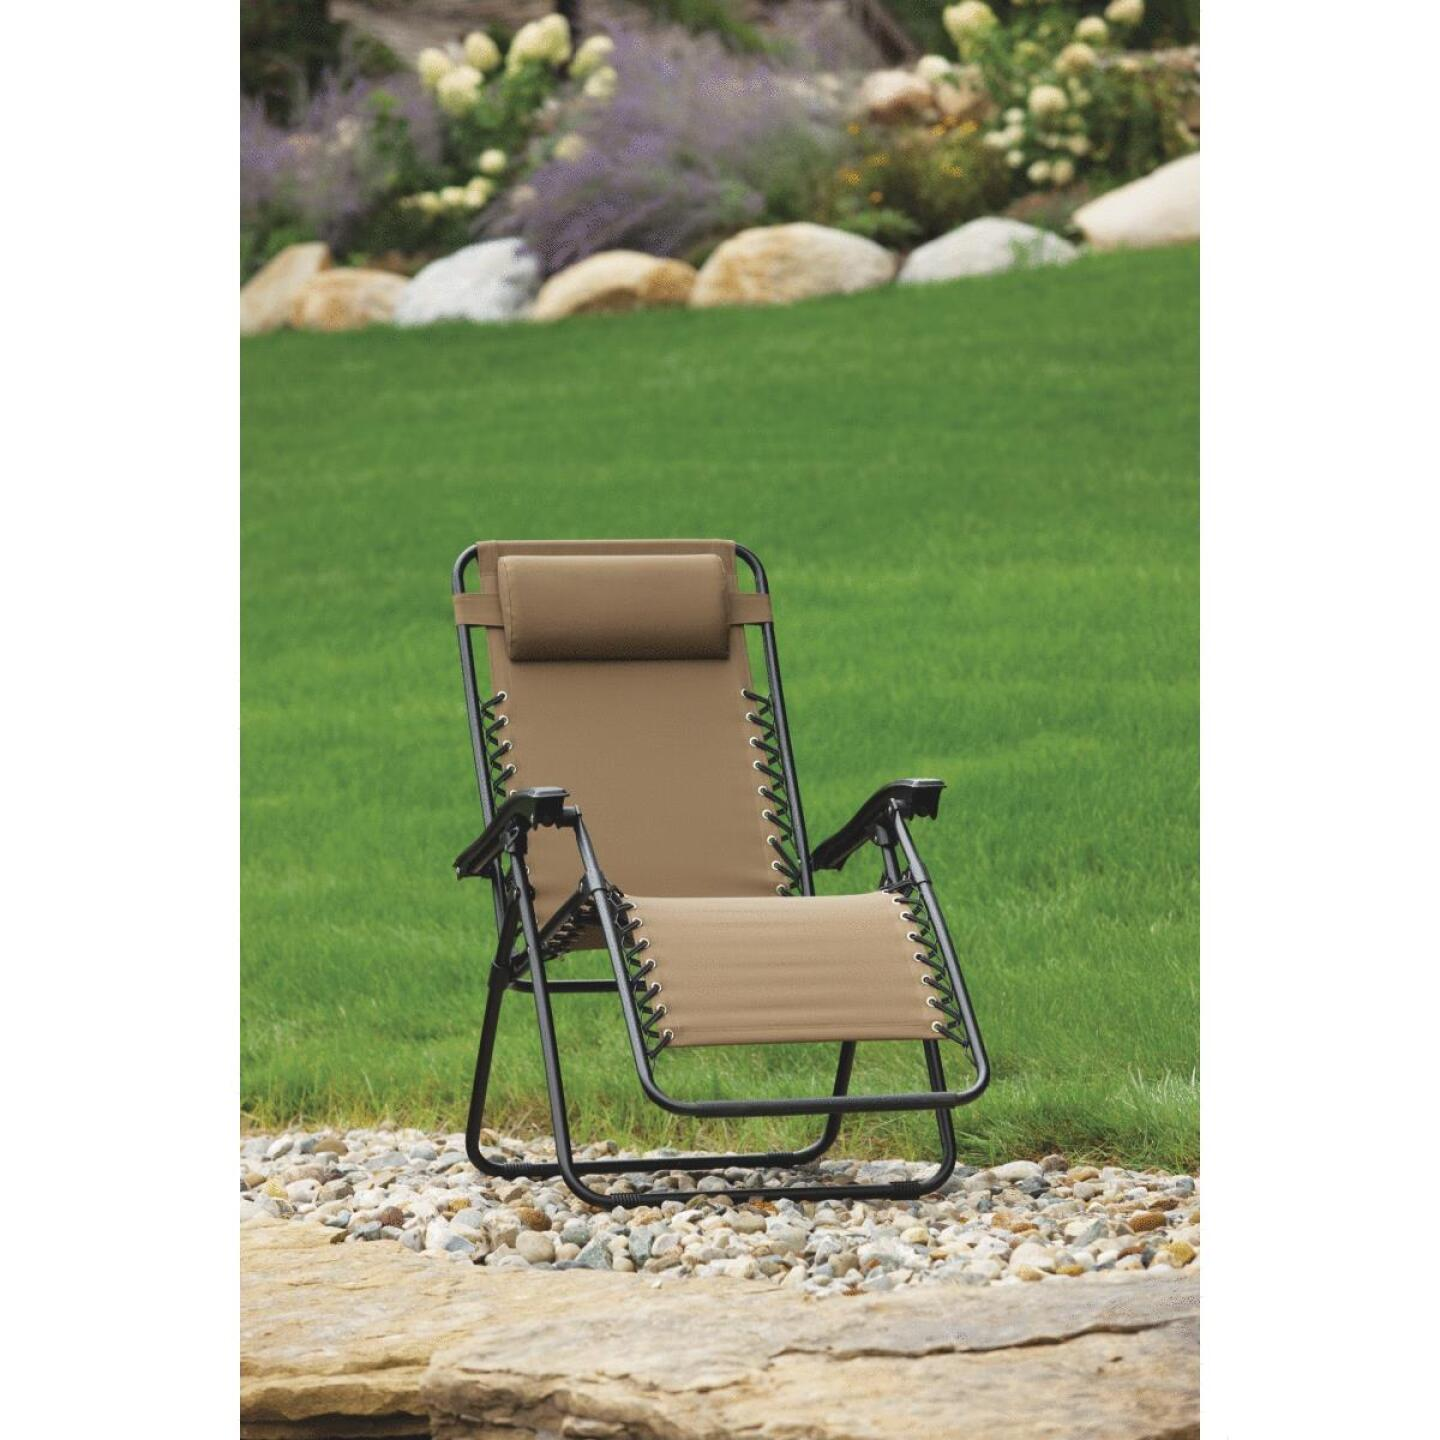 Outdoor Expressions Zero Gravity Relaxer Tan Convertible Lounge Chair Image 5